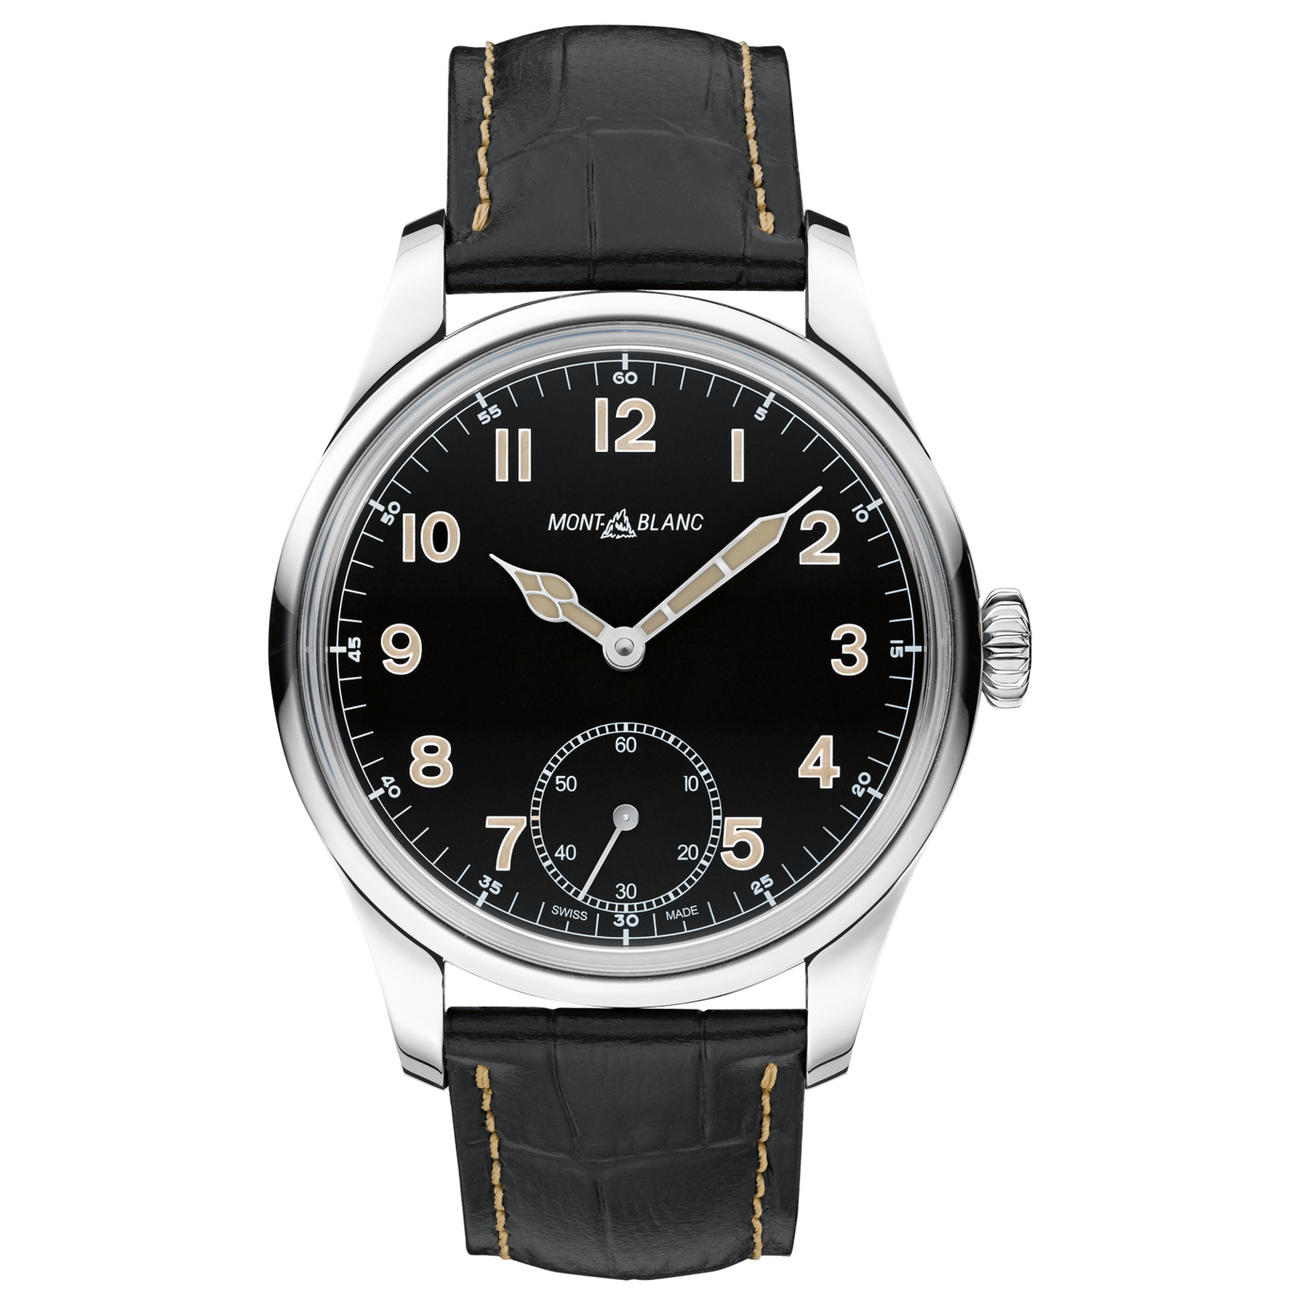 Montblanc 1858 Manual Small Second Limited Edition - 858 Pcs.